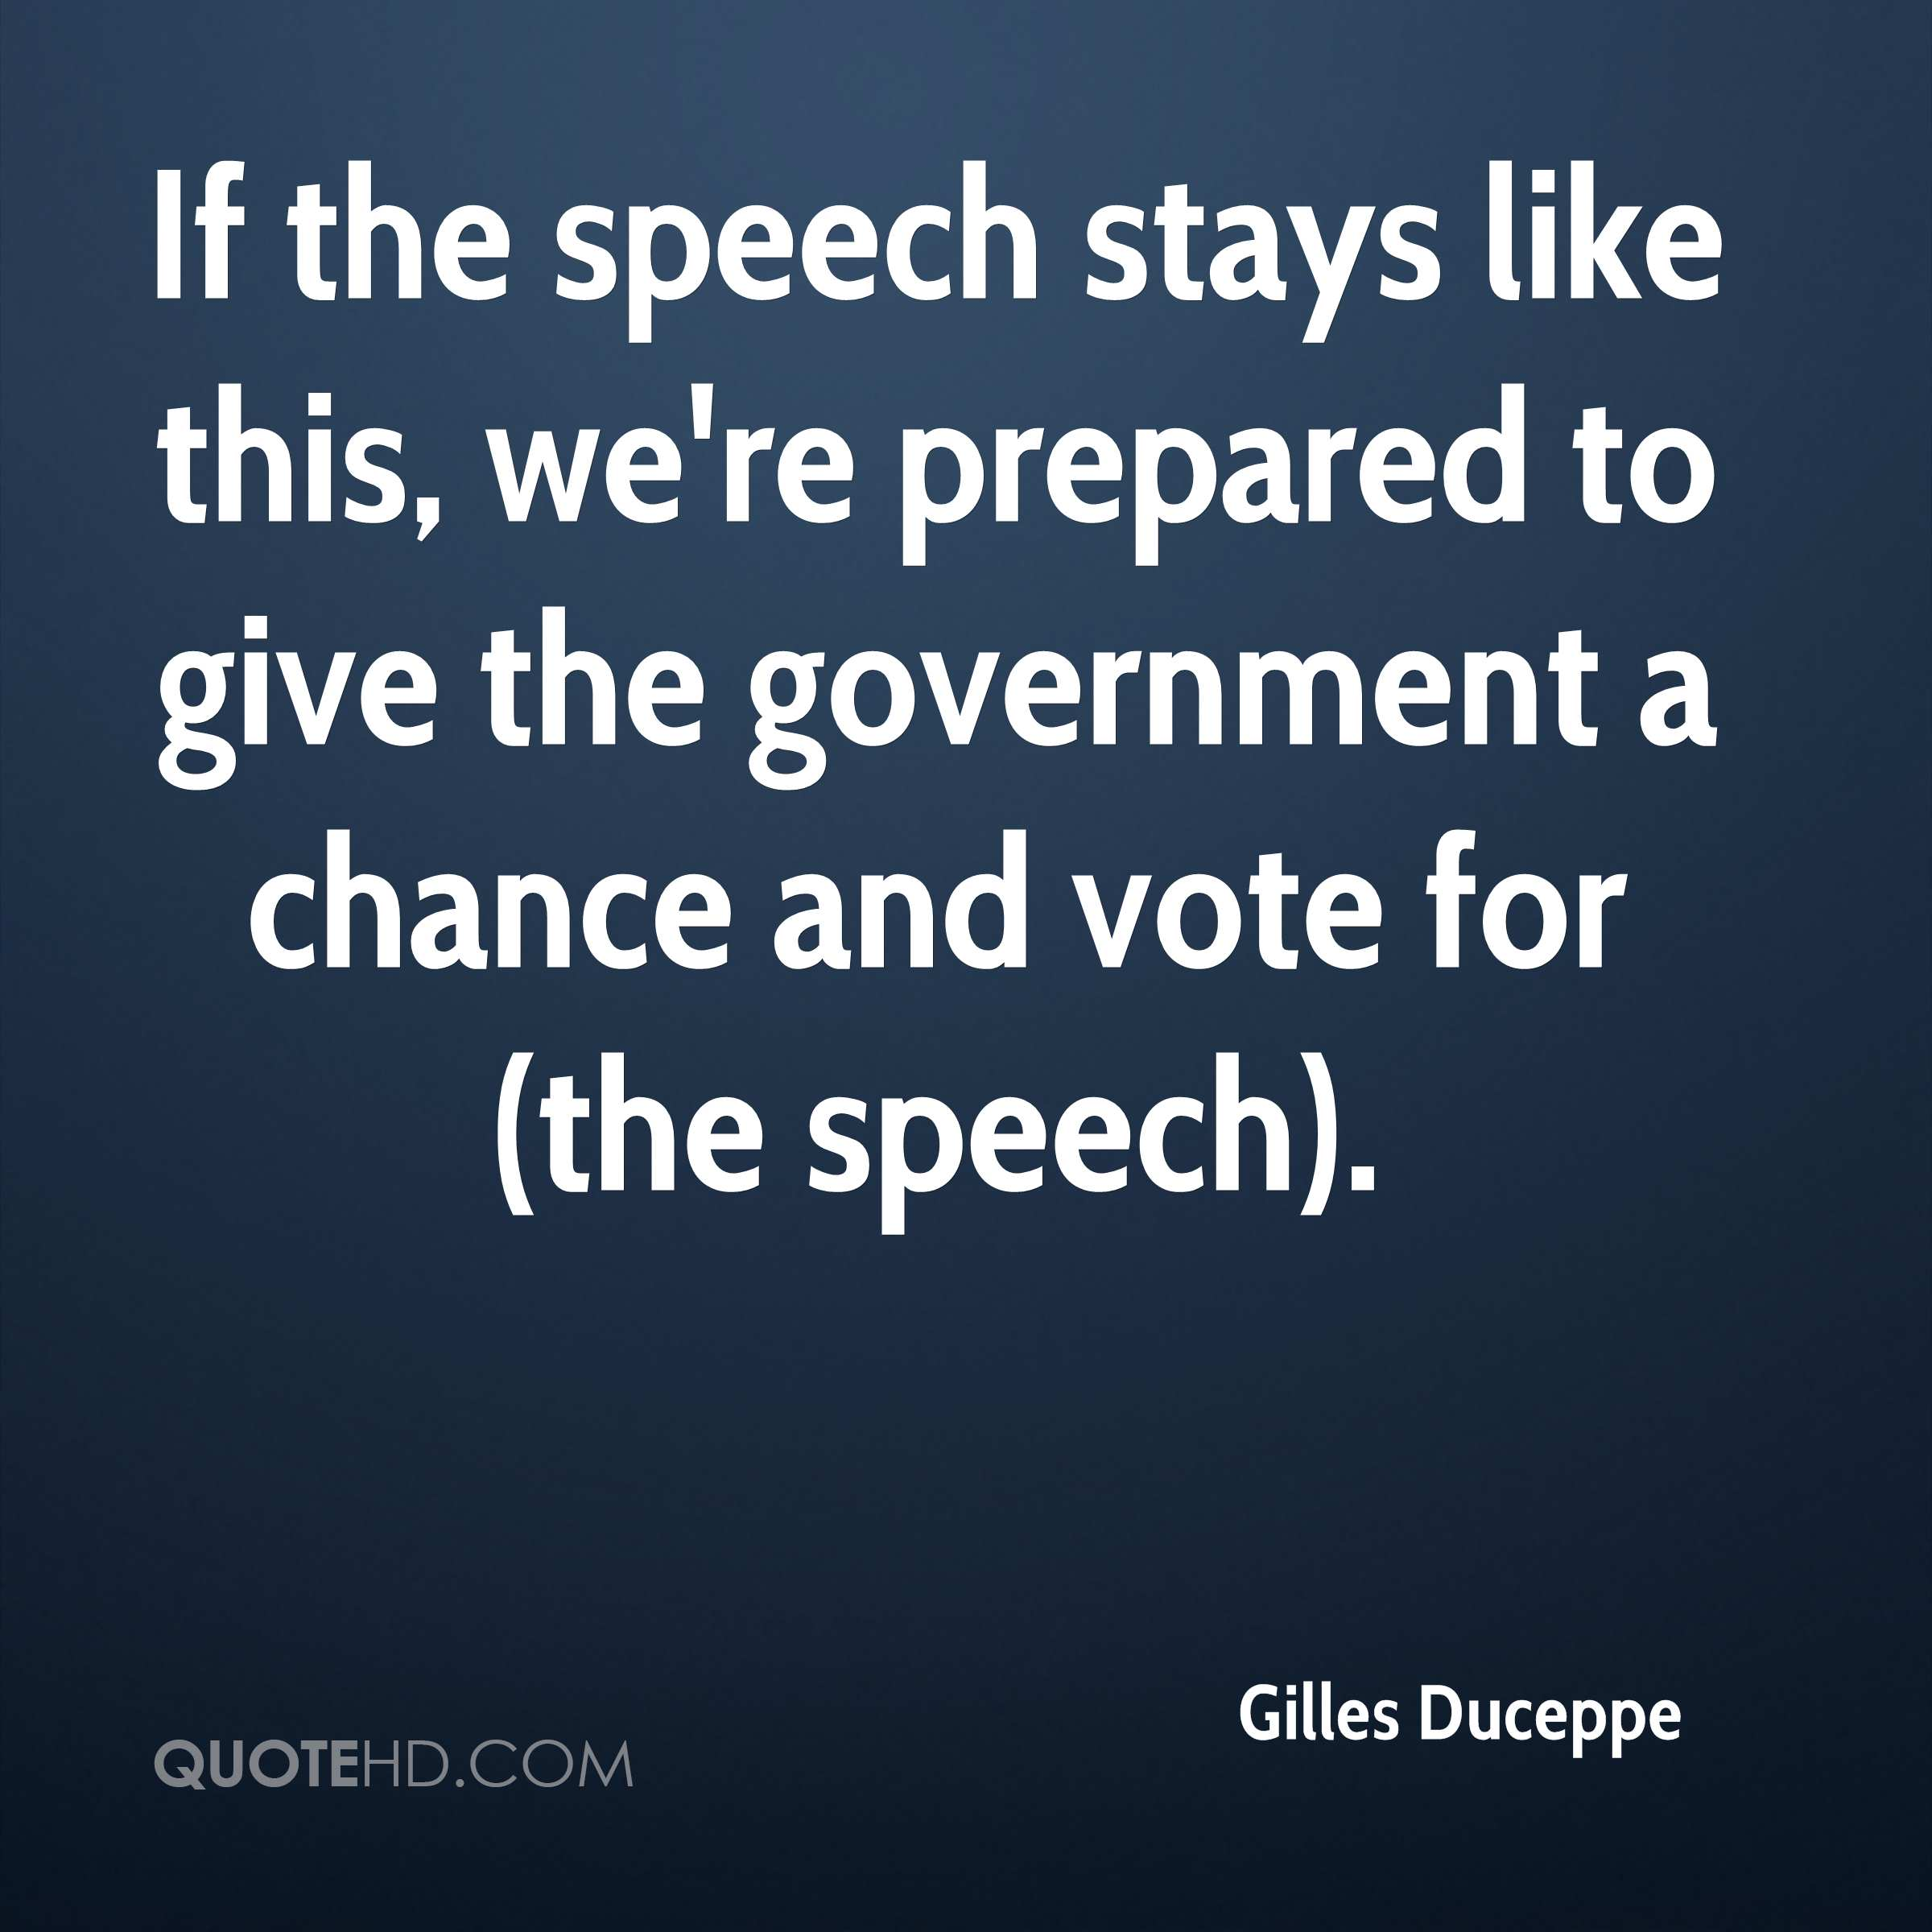 If the speech stays like this, we're prepared to give the government a chance and vote for (the speech).